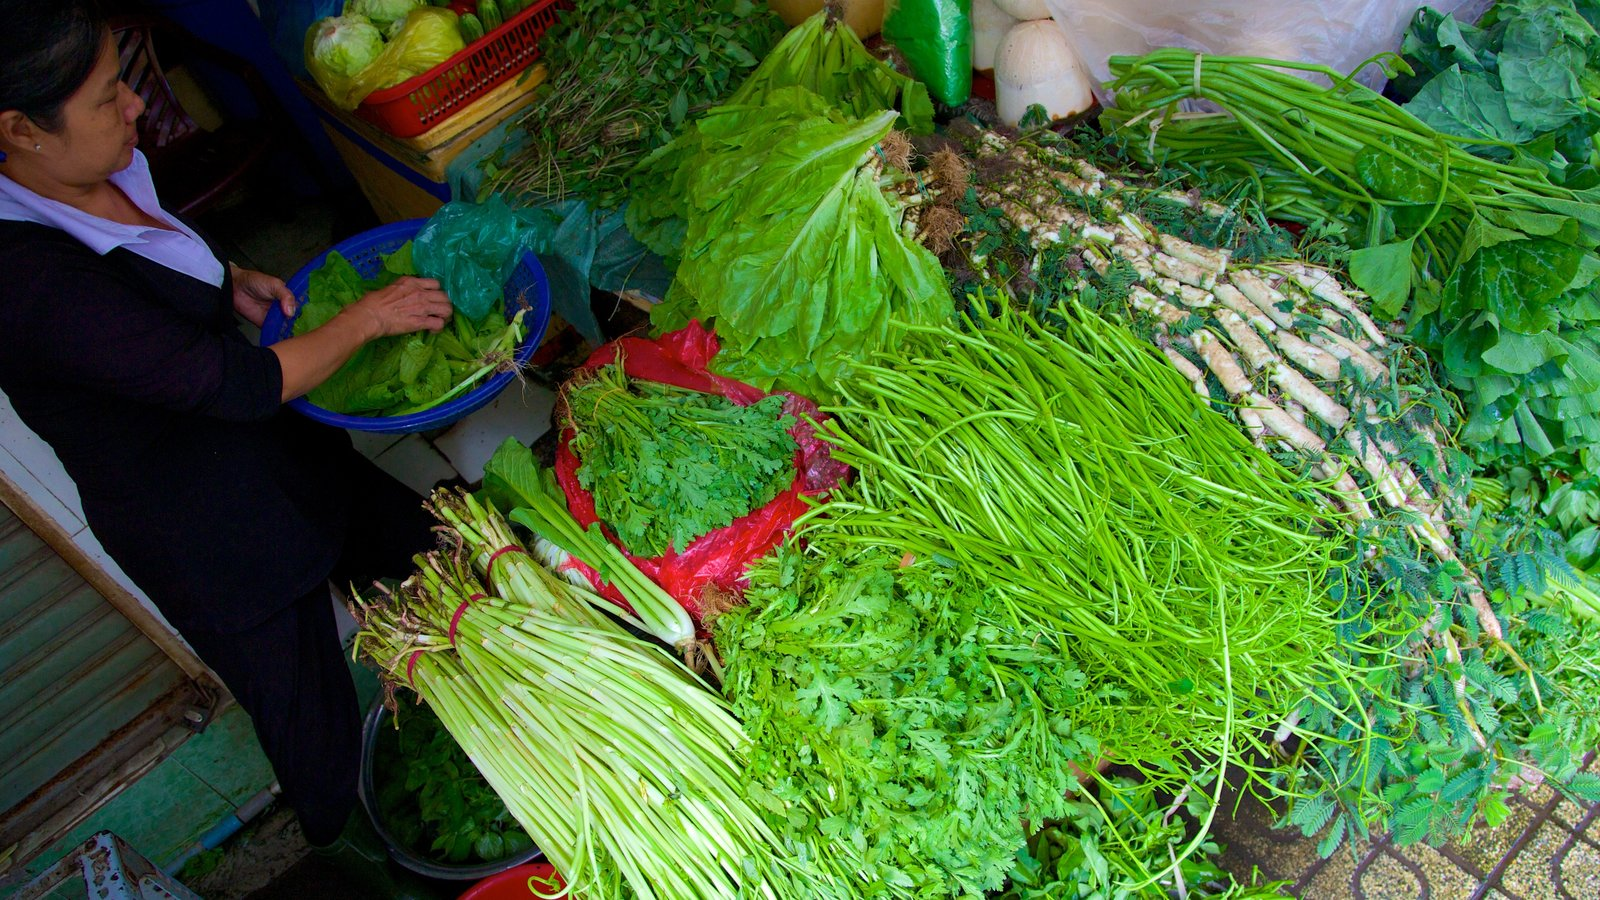 Ben Thanh Market showing food and markets